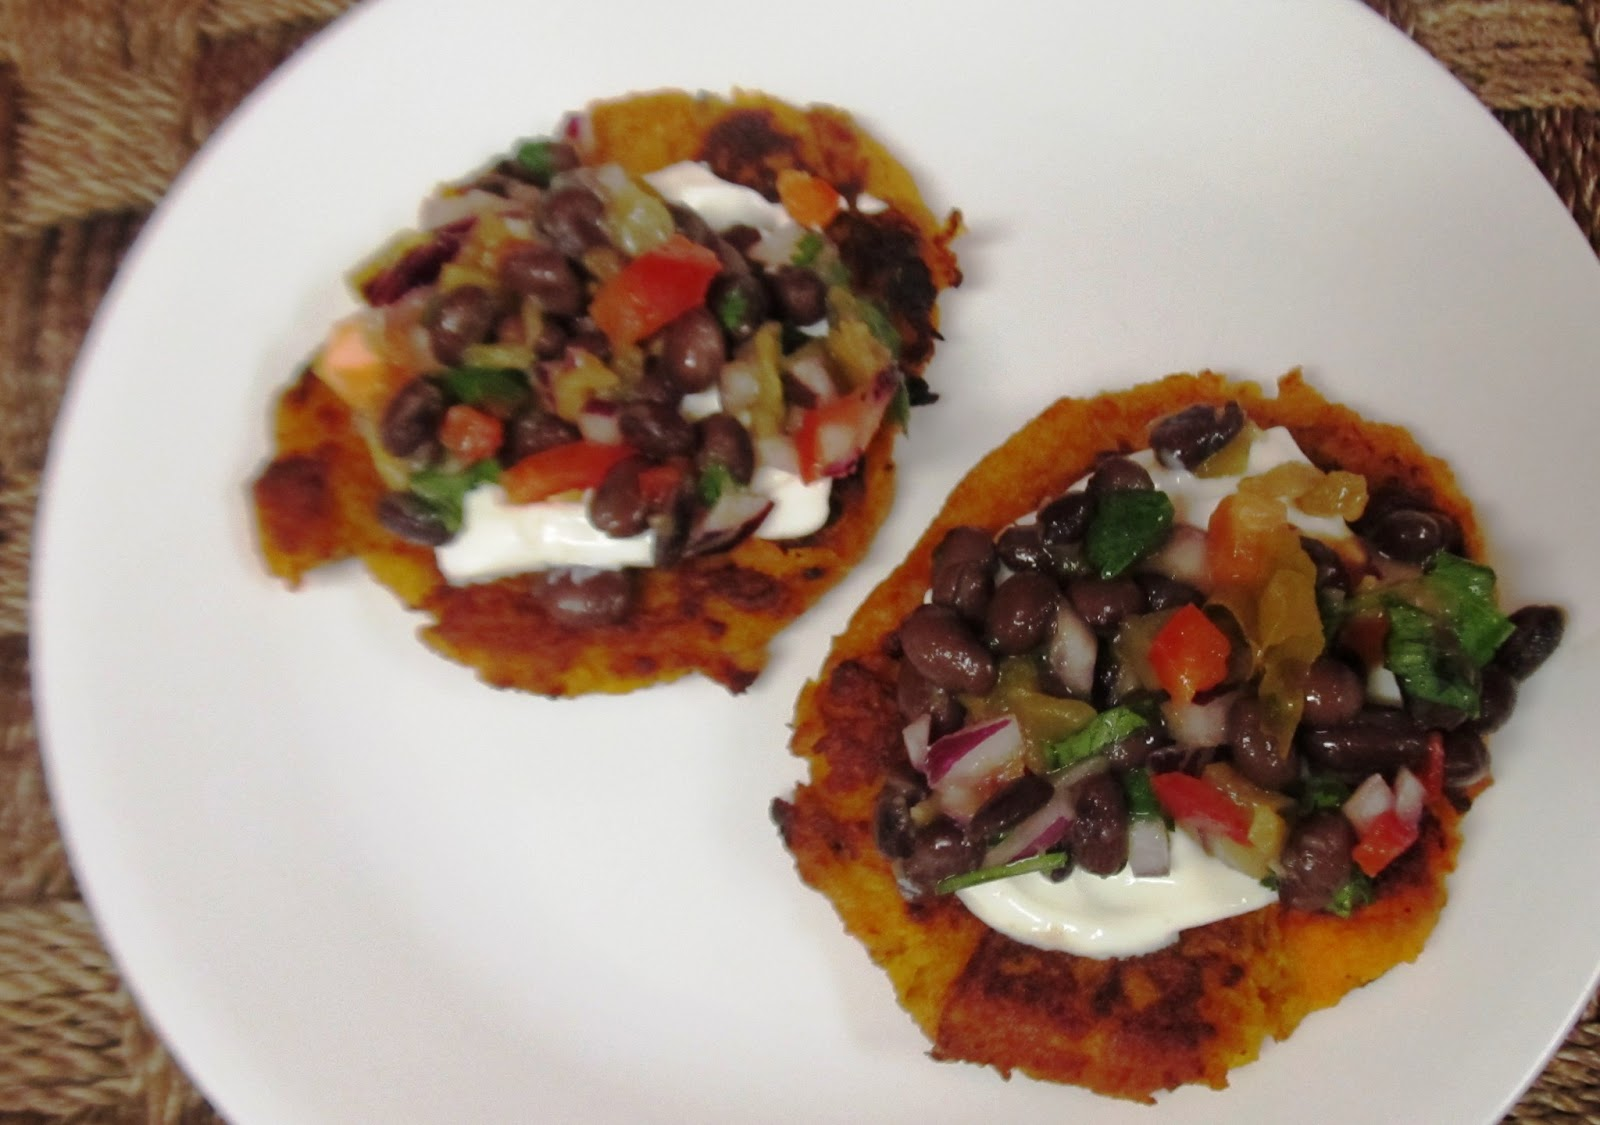 ... ... Healthy & Low Calorie: Sweet Potato Patties with Black Bean Salsa